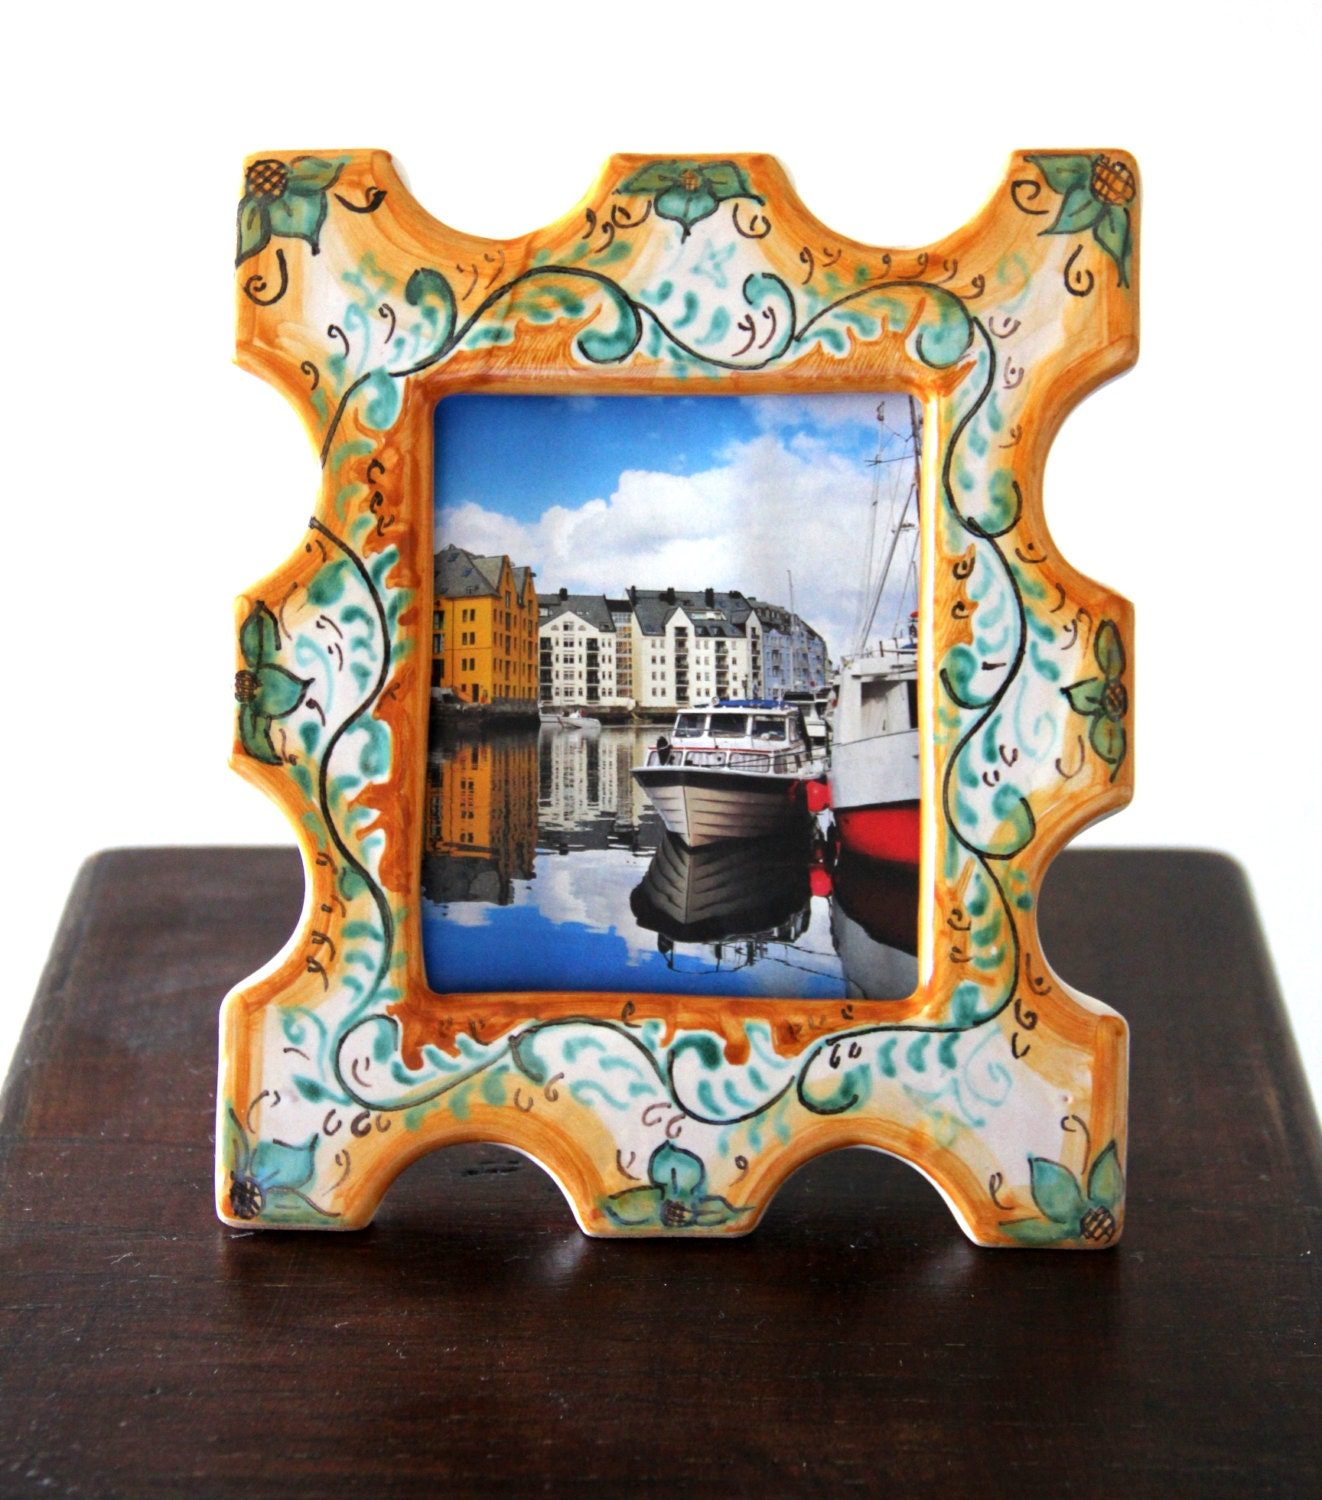 Custom ceramic frame picture frame frames customized gift ceramic custom ceramic frame picture frame frames customized gift ceramic artistic handpainted italian majolica pottery frame personalized italy jeuxipadfo Image collections